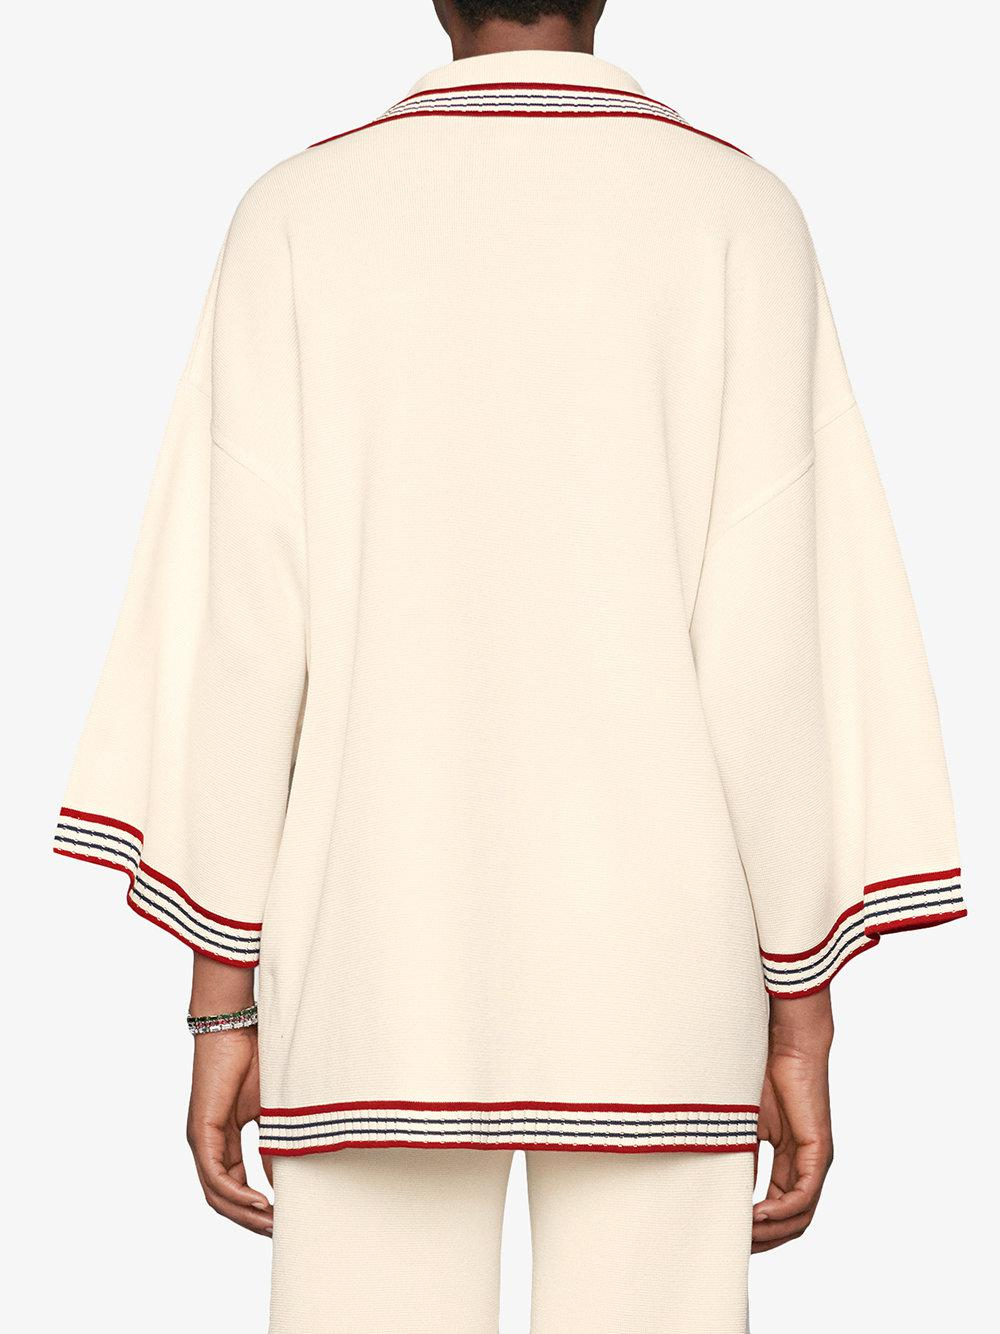 07a2cafe Gucci Silk Cotton Cardigan With Stripes in White - Lyst